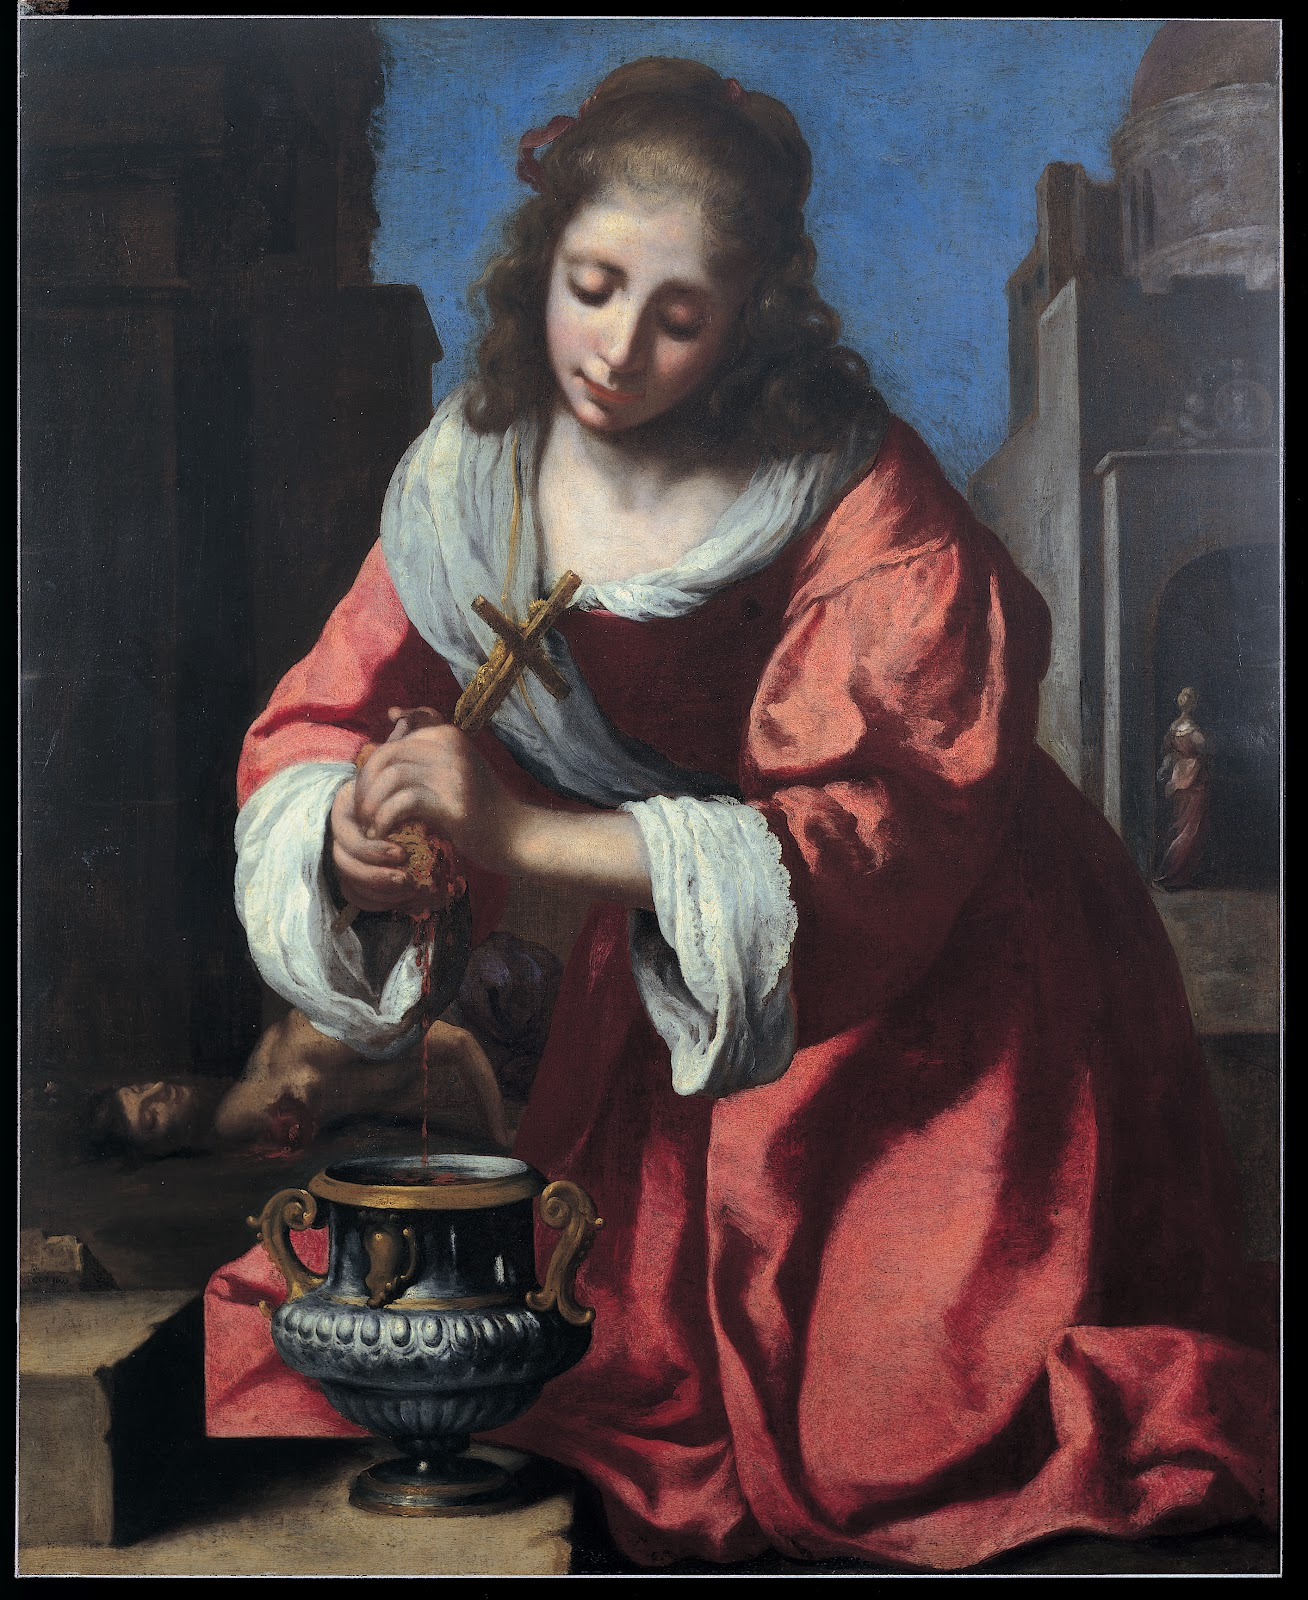 Saint Praxedes , Johannes Vermeer (disputed), 1655, The Barbara Piasecka Johnson Collection Foundation